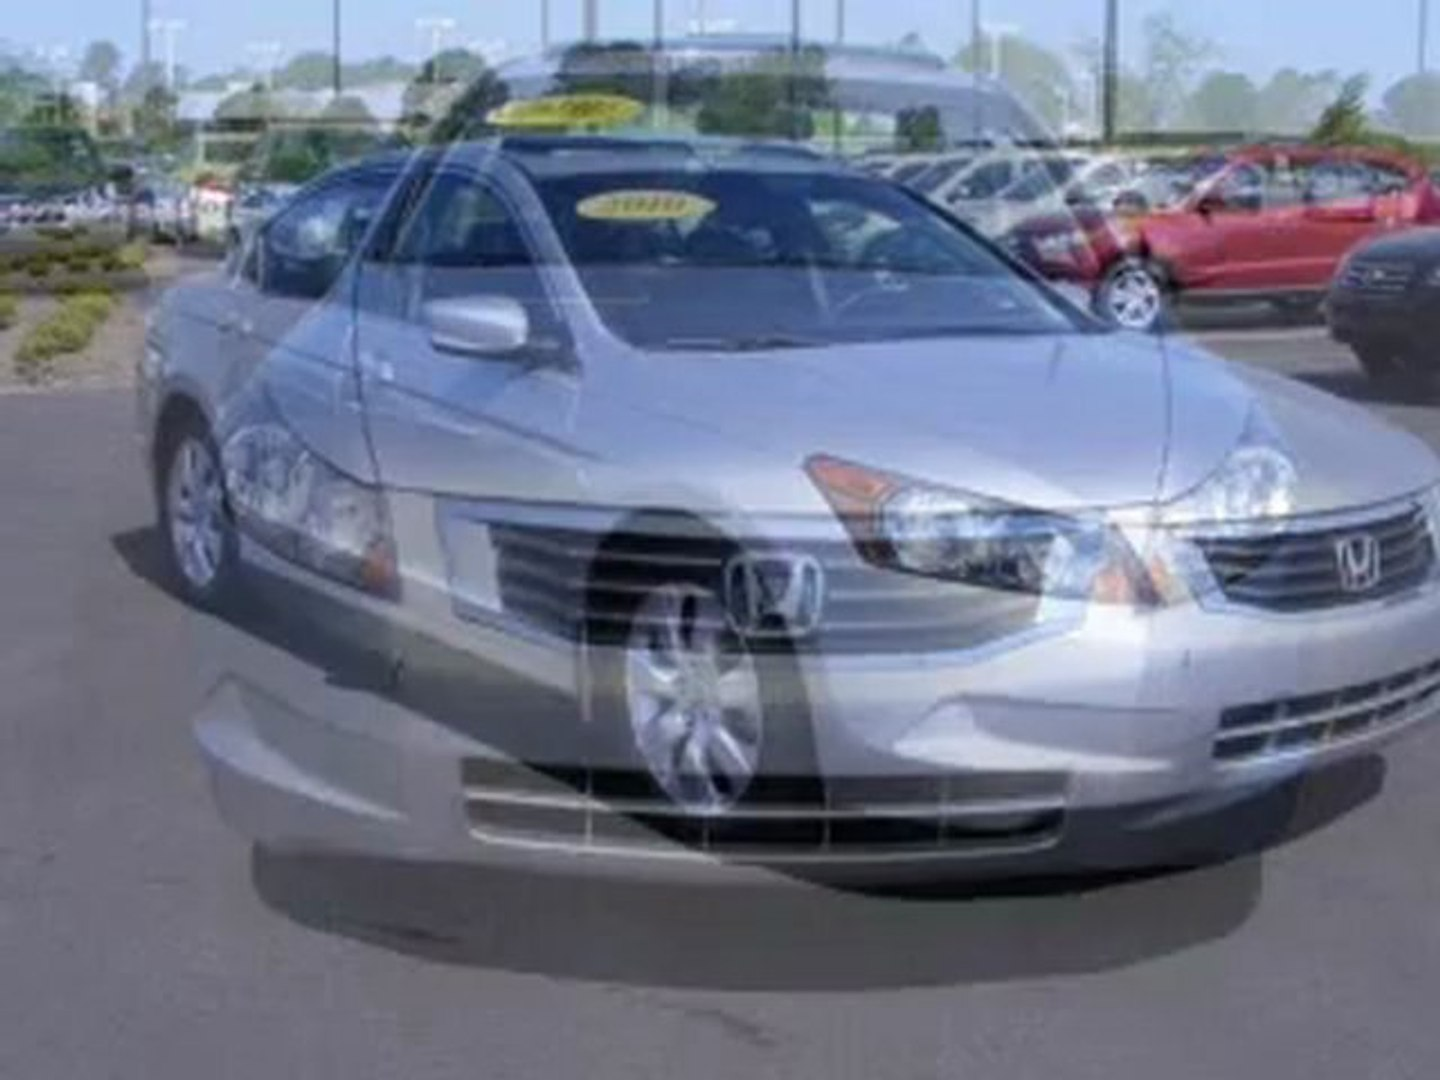 2010 Honda Accord Goldsboro NC - by EveryCarListed.com